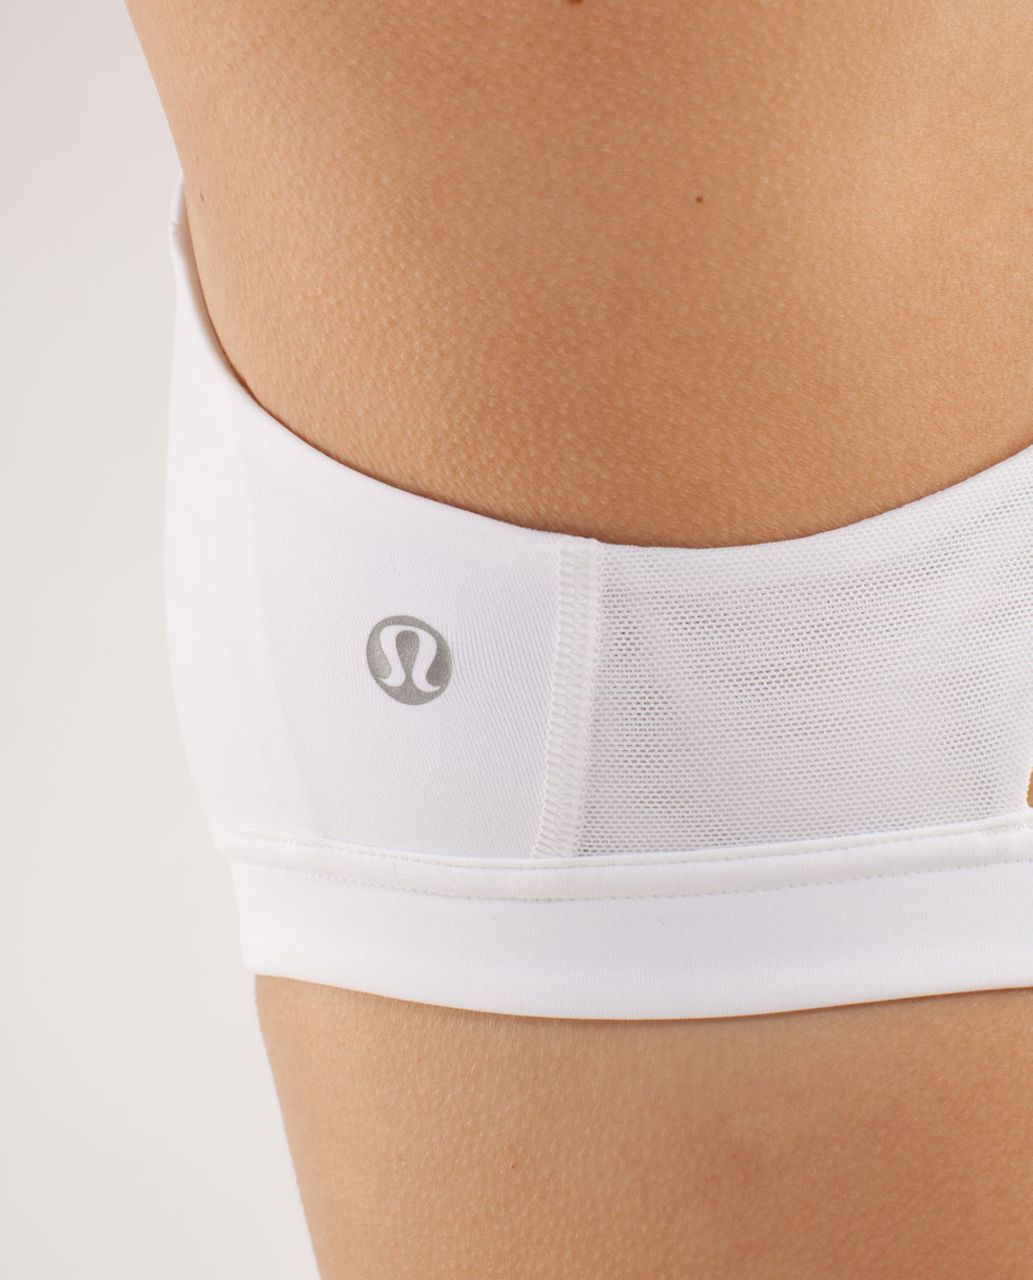 Lululemon Run:  Hook Me Up Bra - White